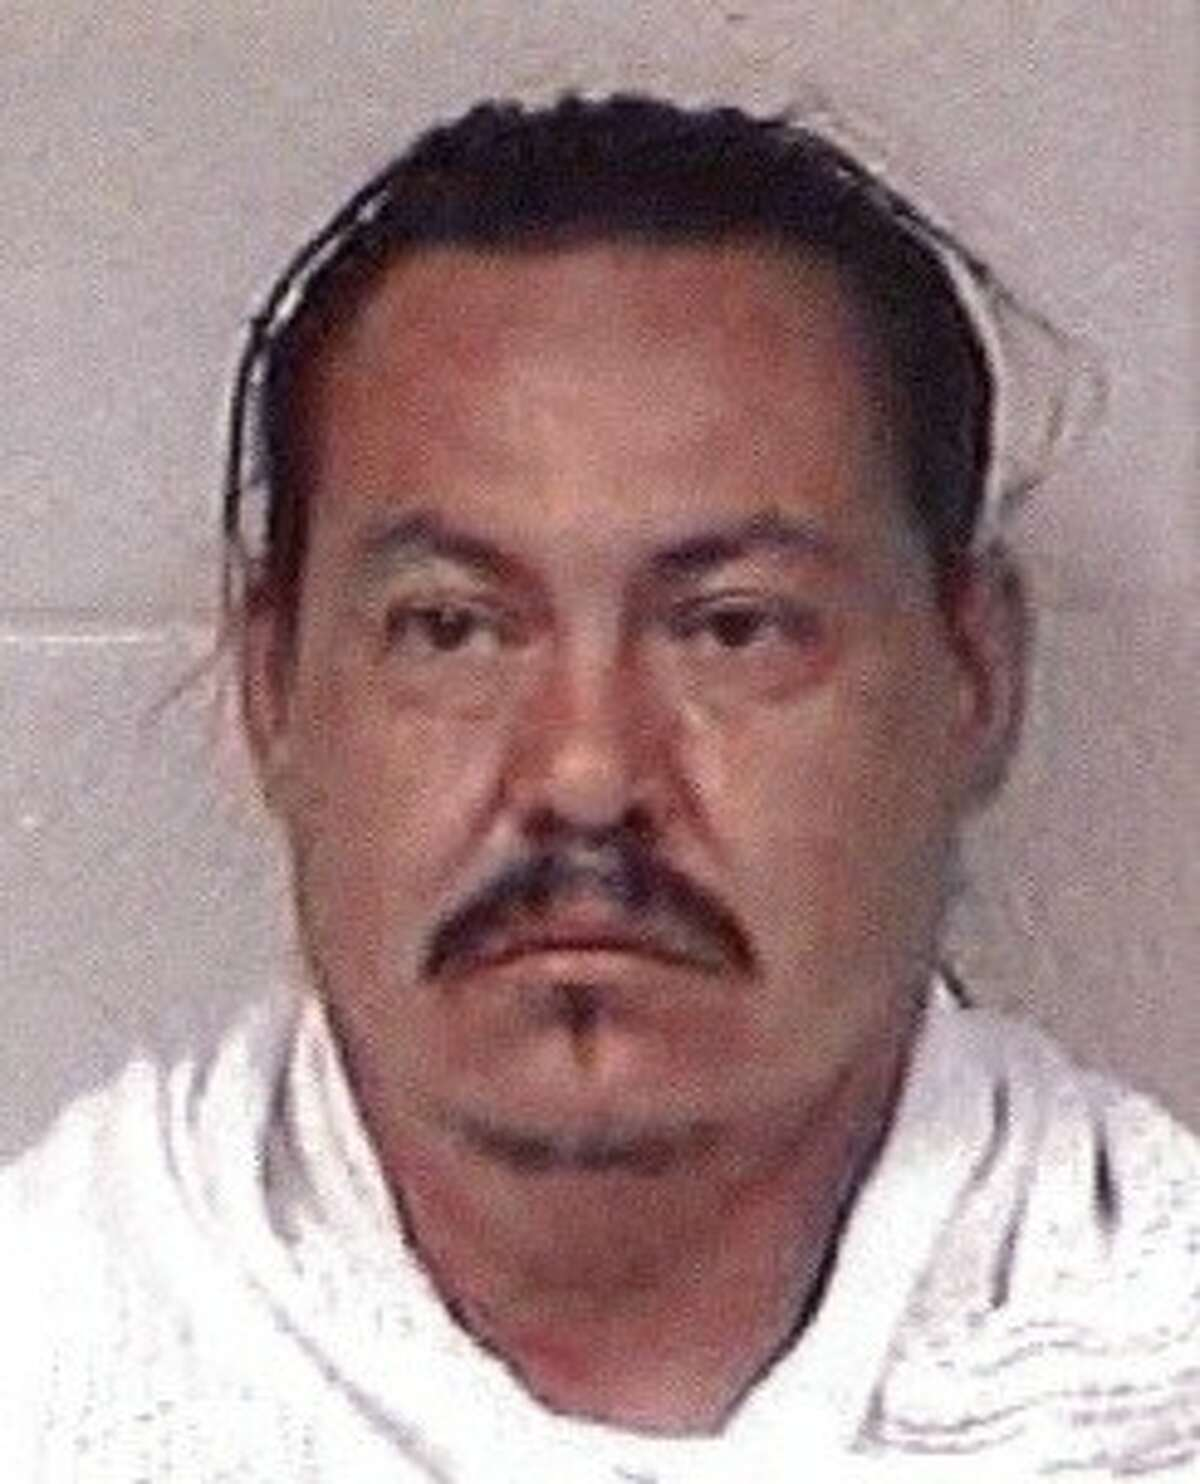 The reward for Jerry Don Holmes, 42, a Texas Ten Most Wanted Sex Offender and this month's featured fugitive, has been increased to $13,000 for information leading to his capture if the tip comes in during the month of June. Holmes is wanted for failure to comply with sex offender registration requirements, assault and bond surrender forfeiture. All tips are guaranteed to be anonymous.